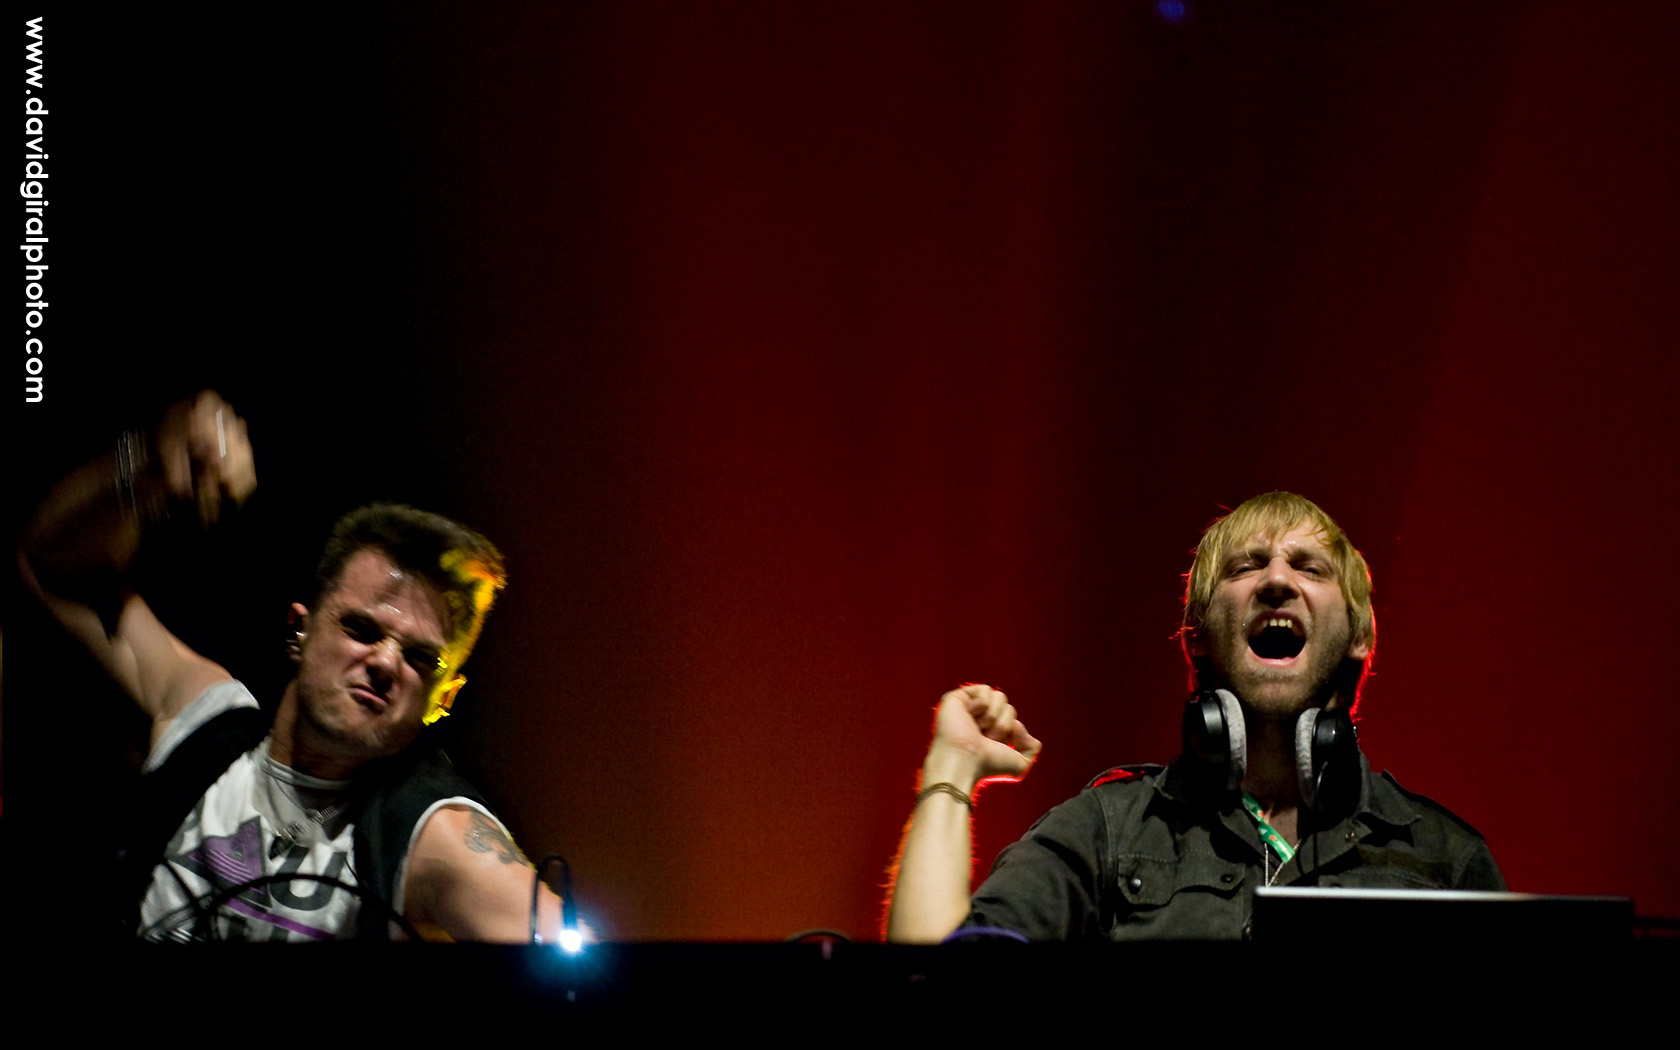 Top DJs: Second Sun at Resolution 2010 Montreal